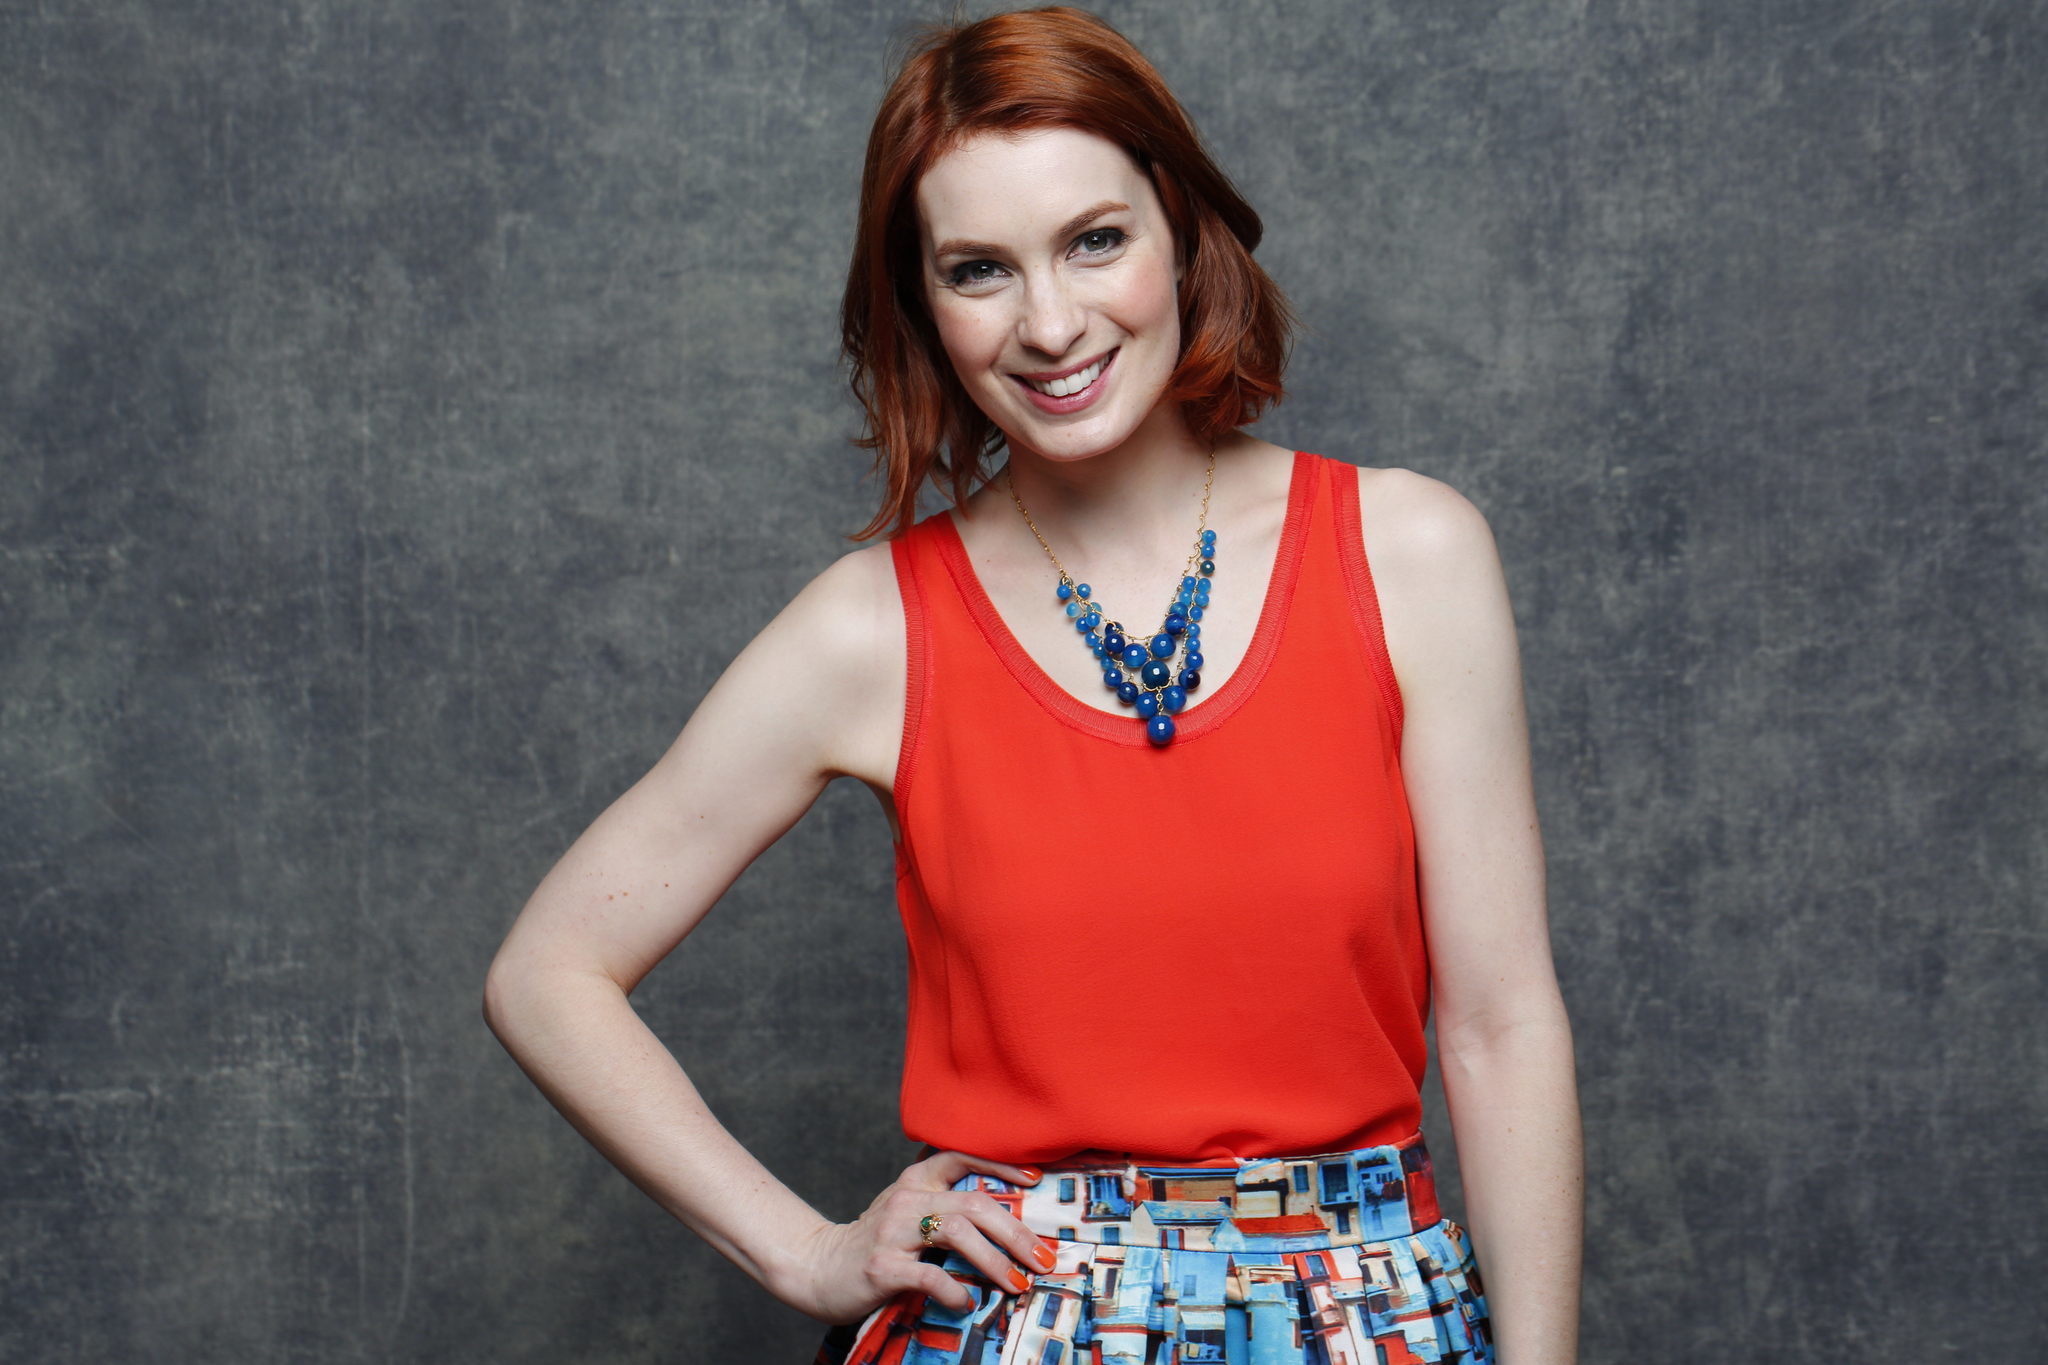 Images of Felicia Day | 2048x1365